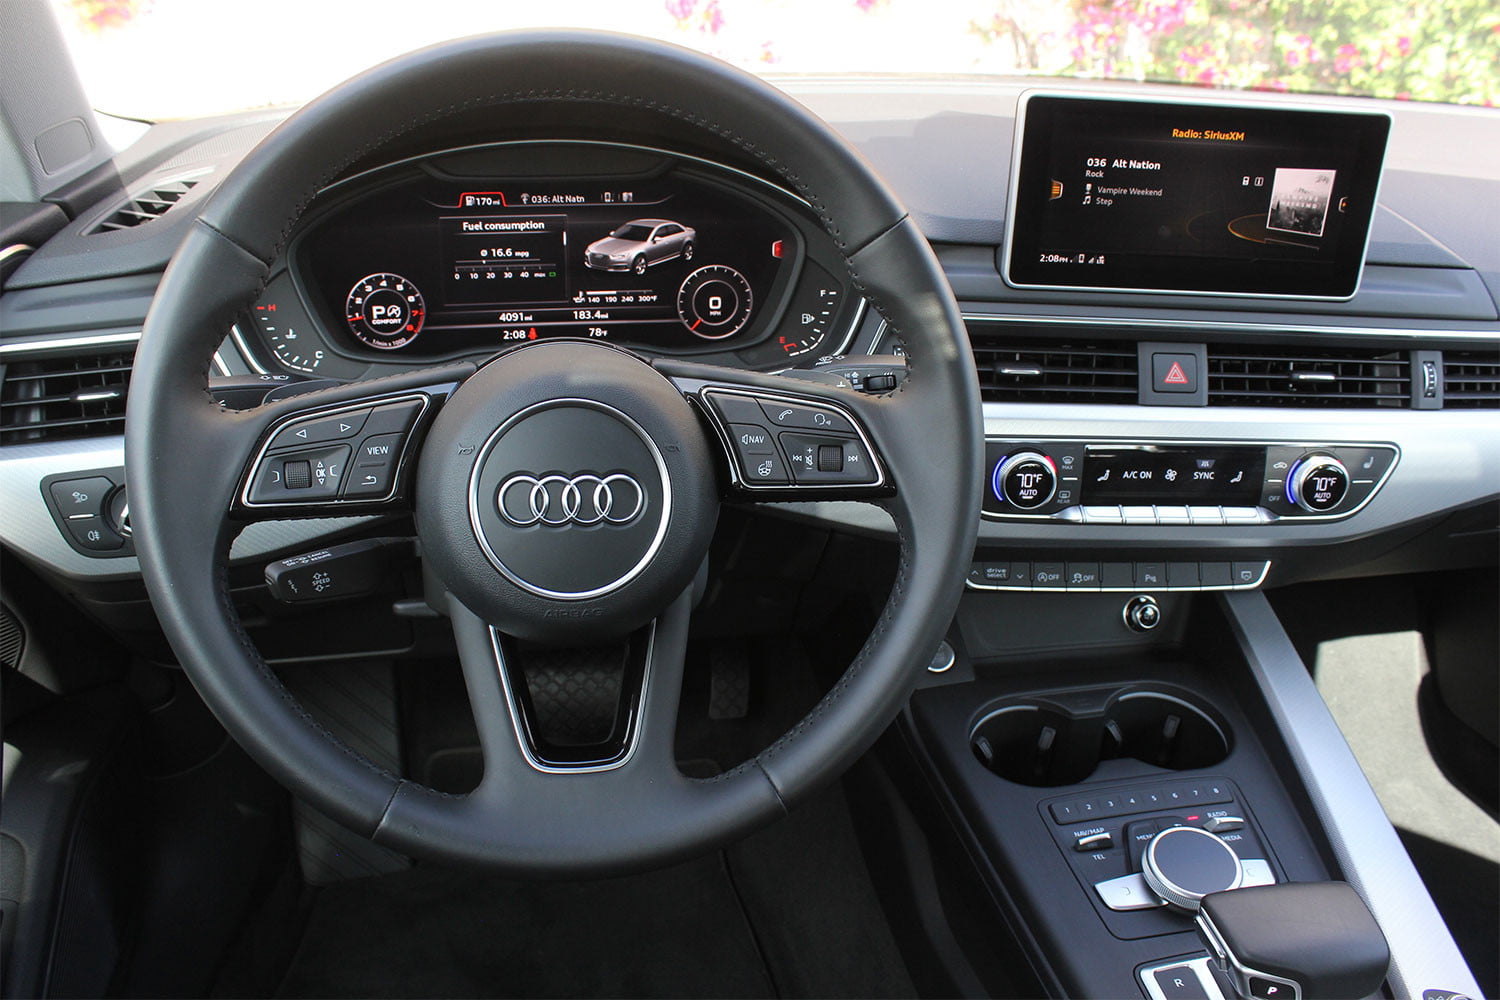 2017 Audi A4 Quattro Review | Digital Trends